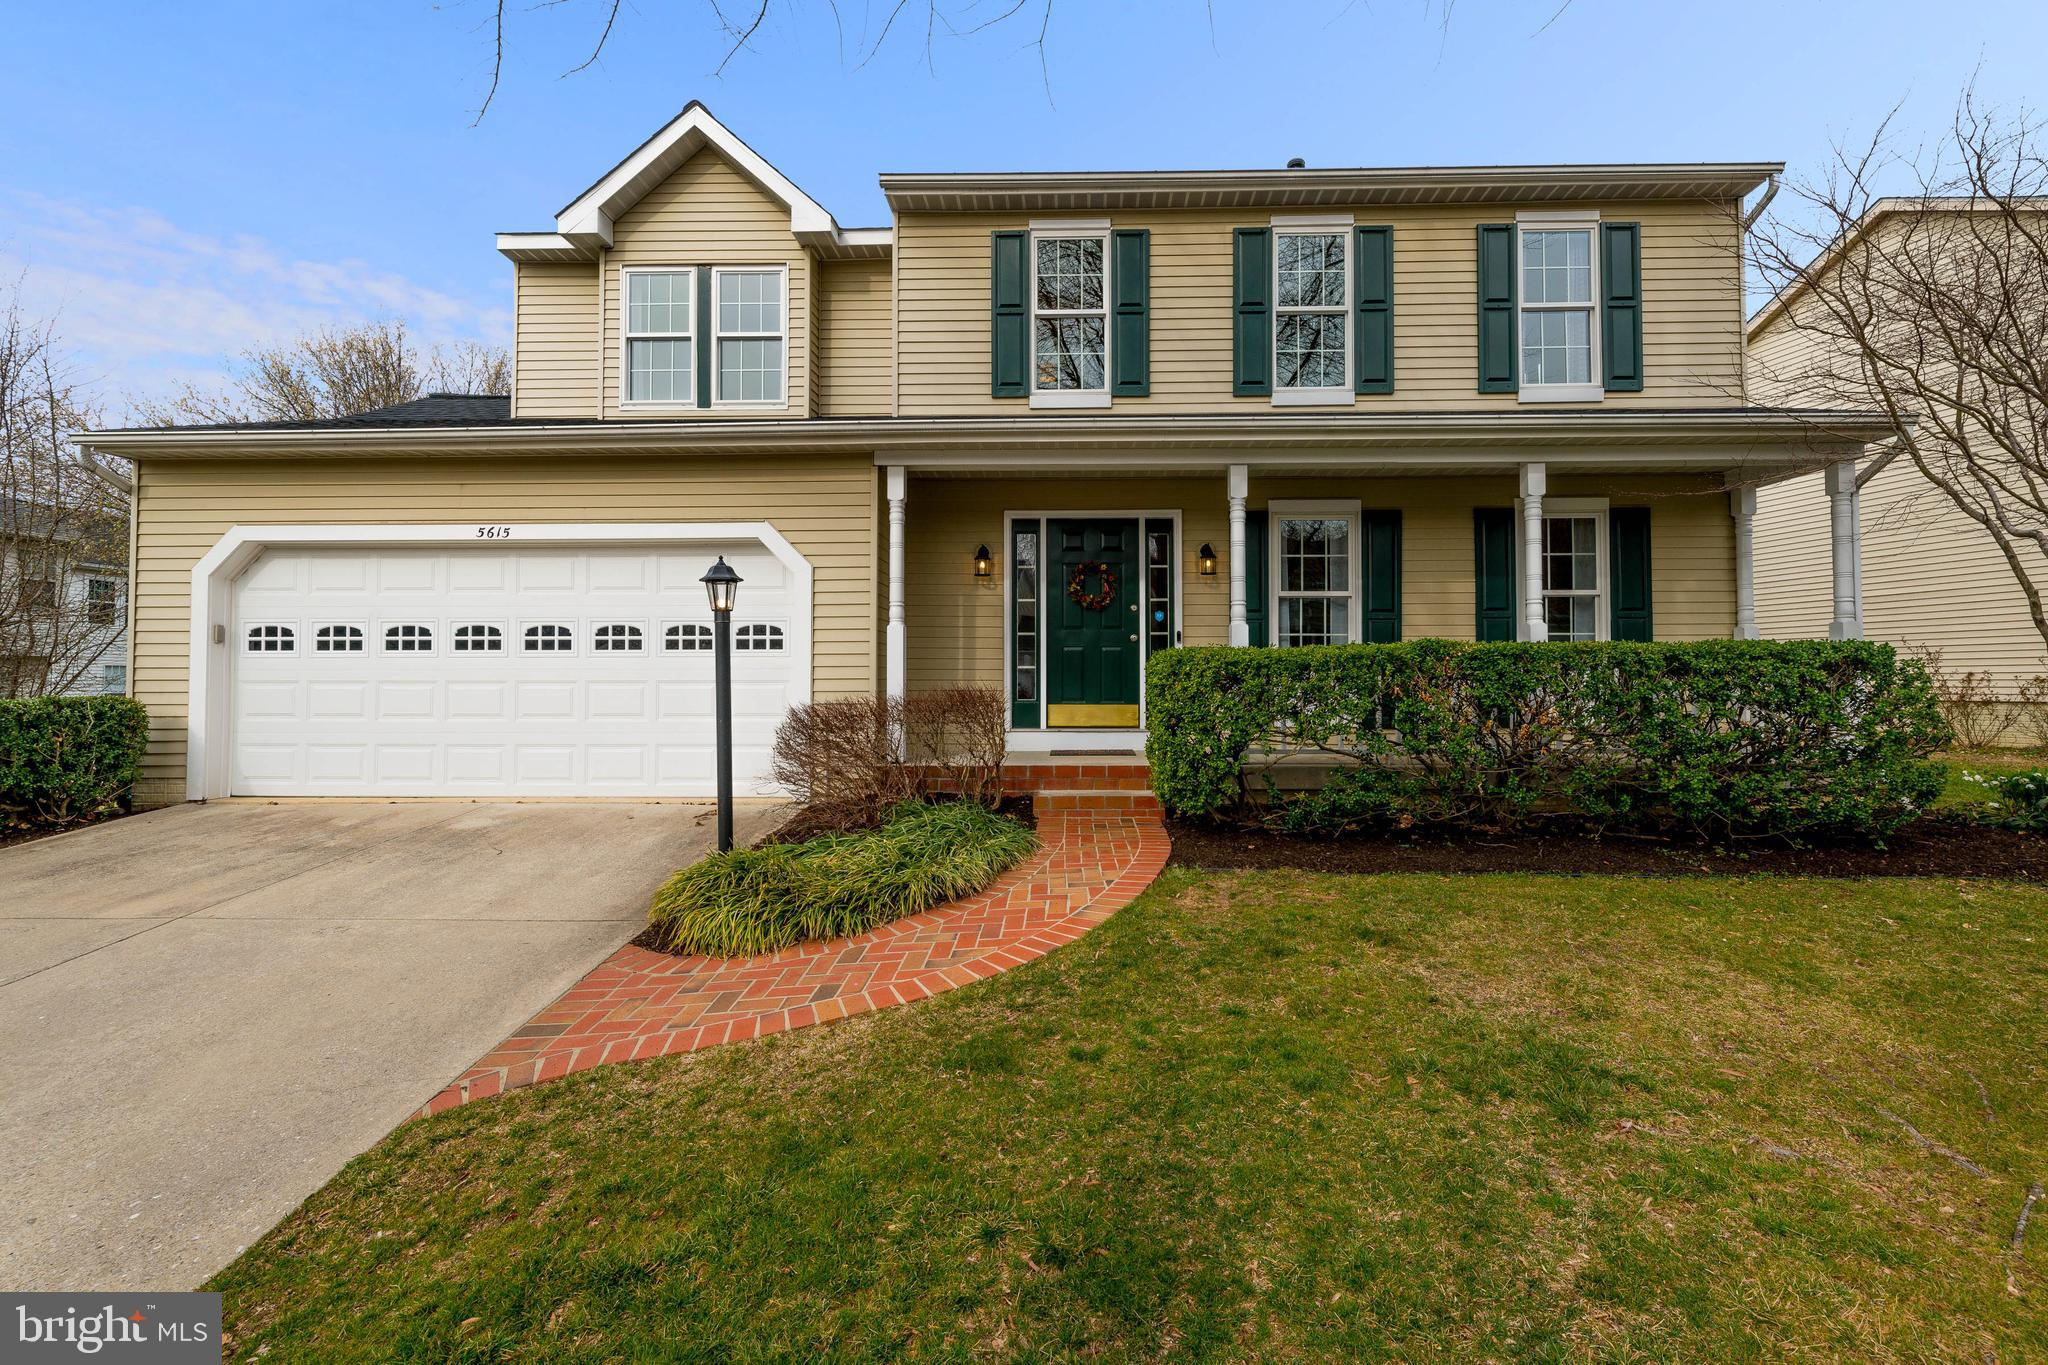 5615 ROUNDTREE LANE, COLUMBIA, MD 21045